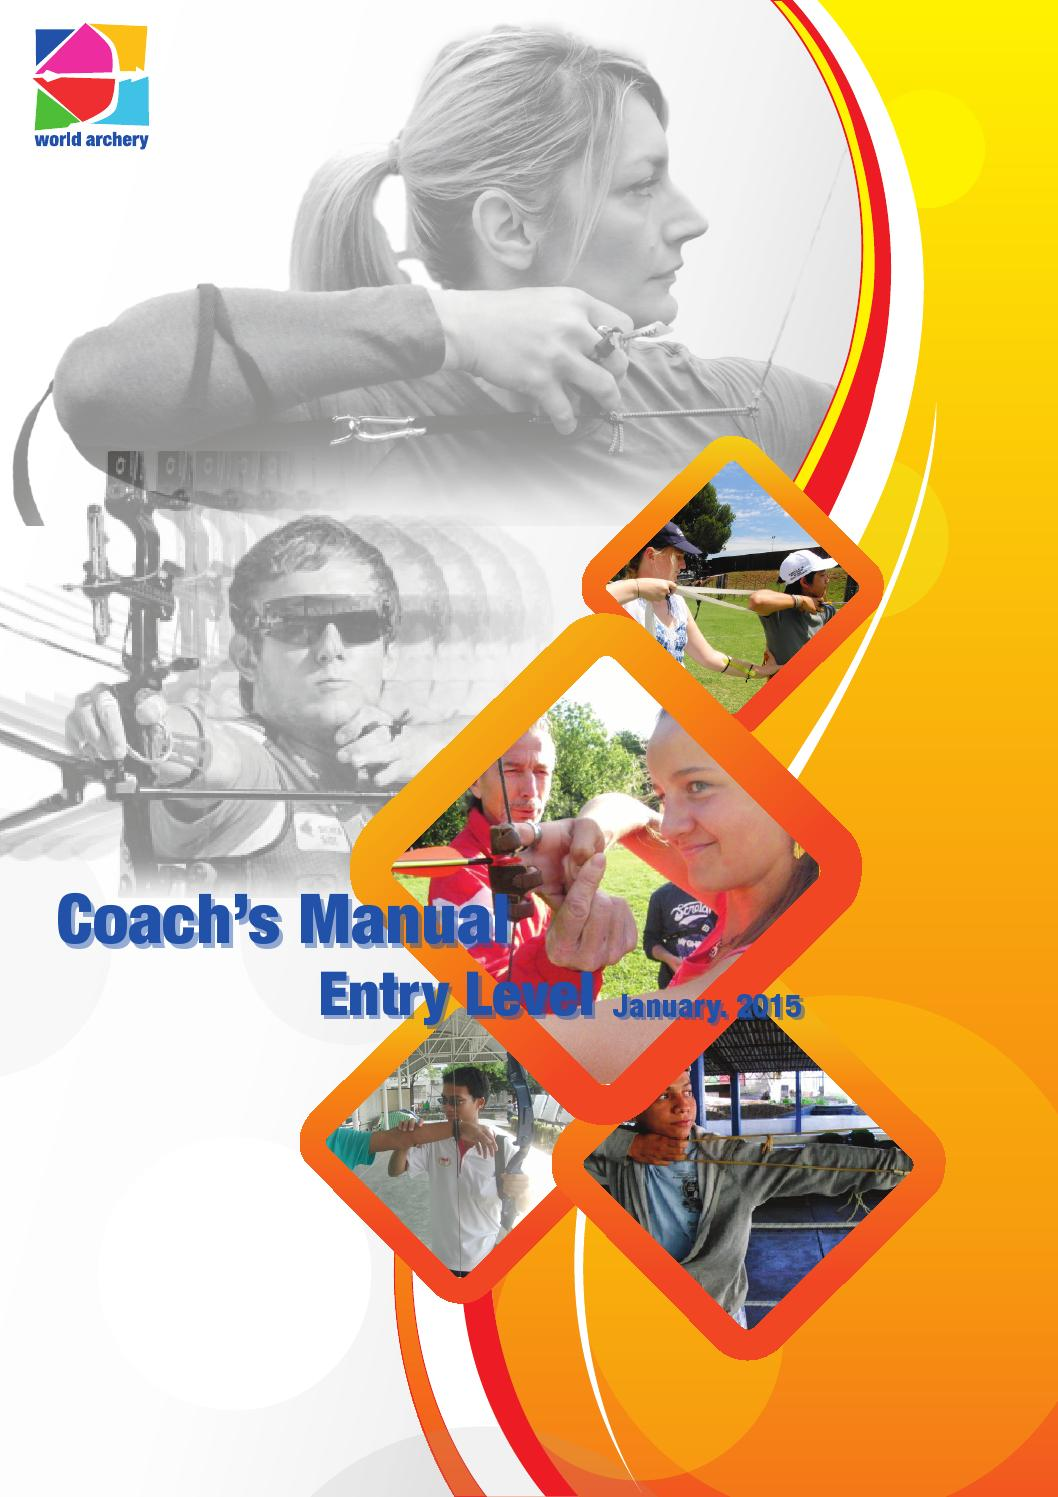 353c125eaf World archery coaching (manual level 1) (januari 2015) by Davy Goedertier -  issuu